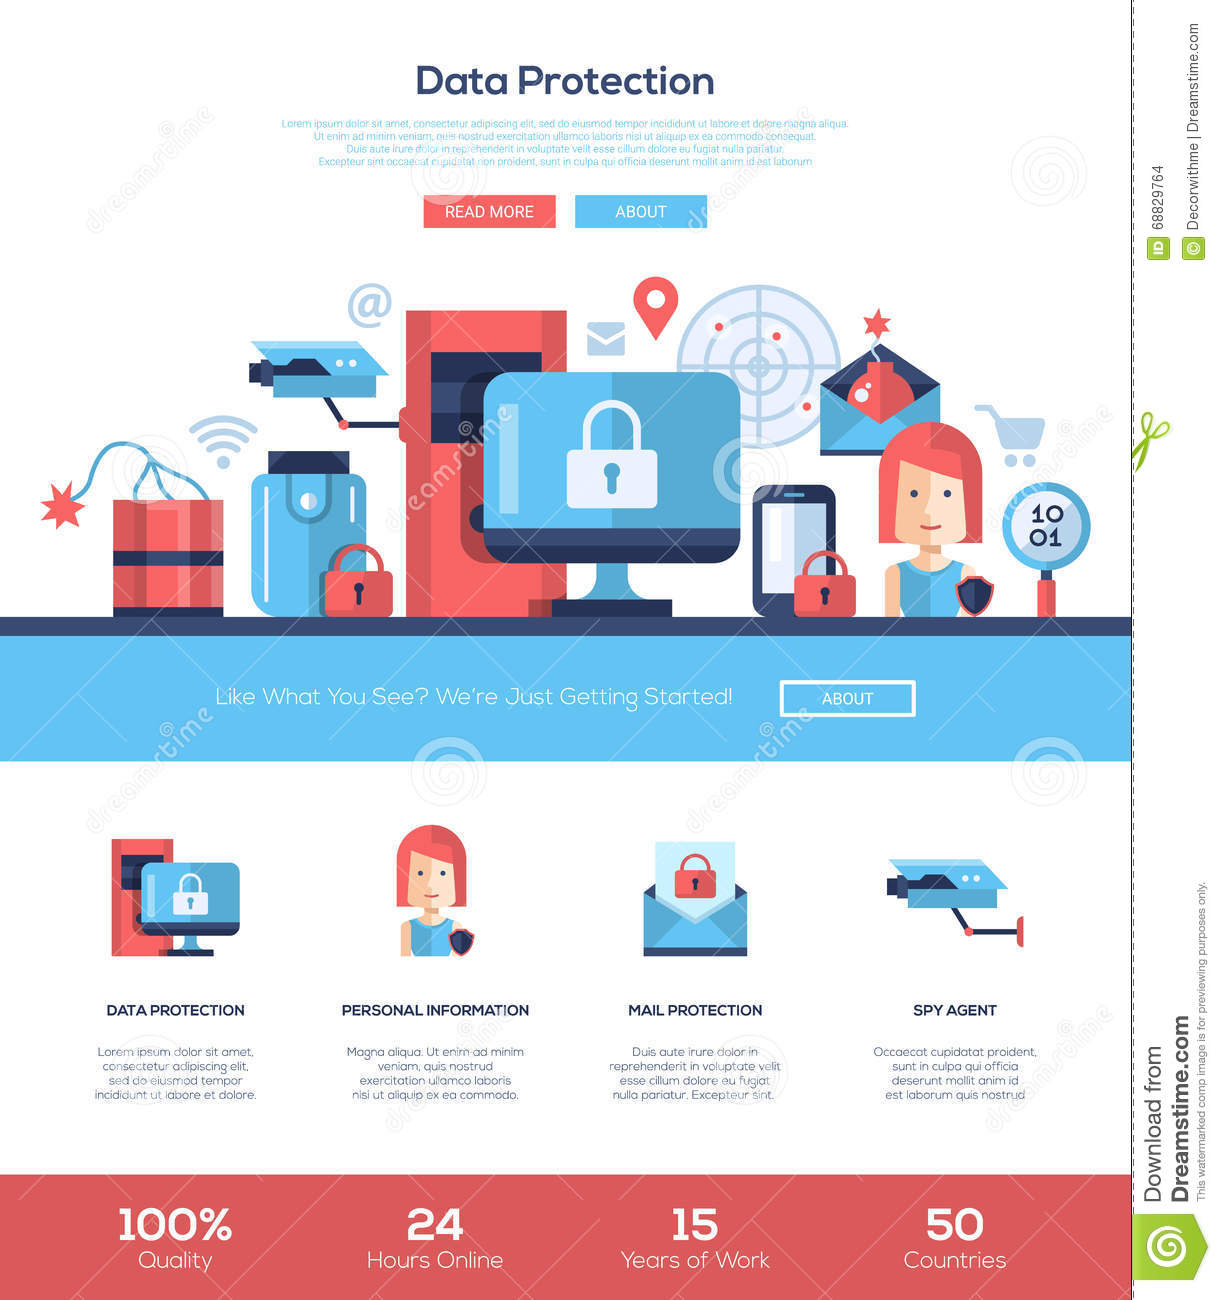 Free Website Privacy Policy Template GDPR Compliant Visualbrainsinfo - Free online privacy policy template